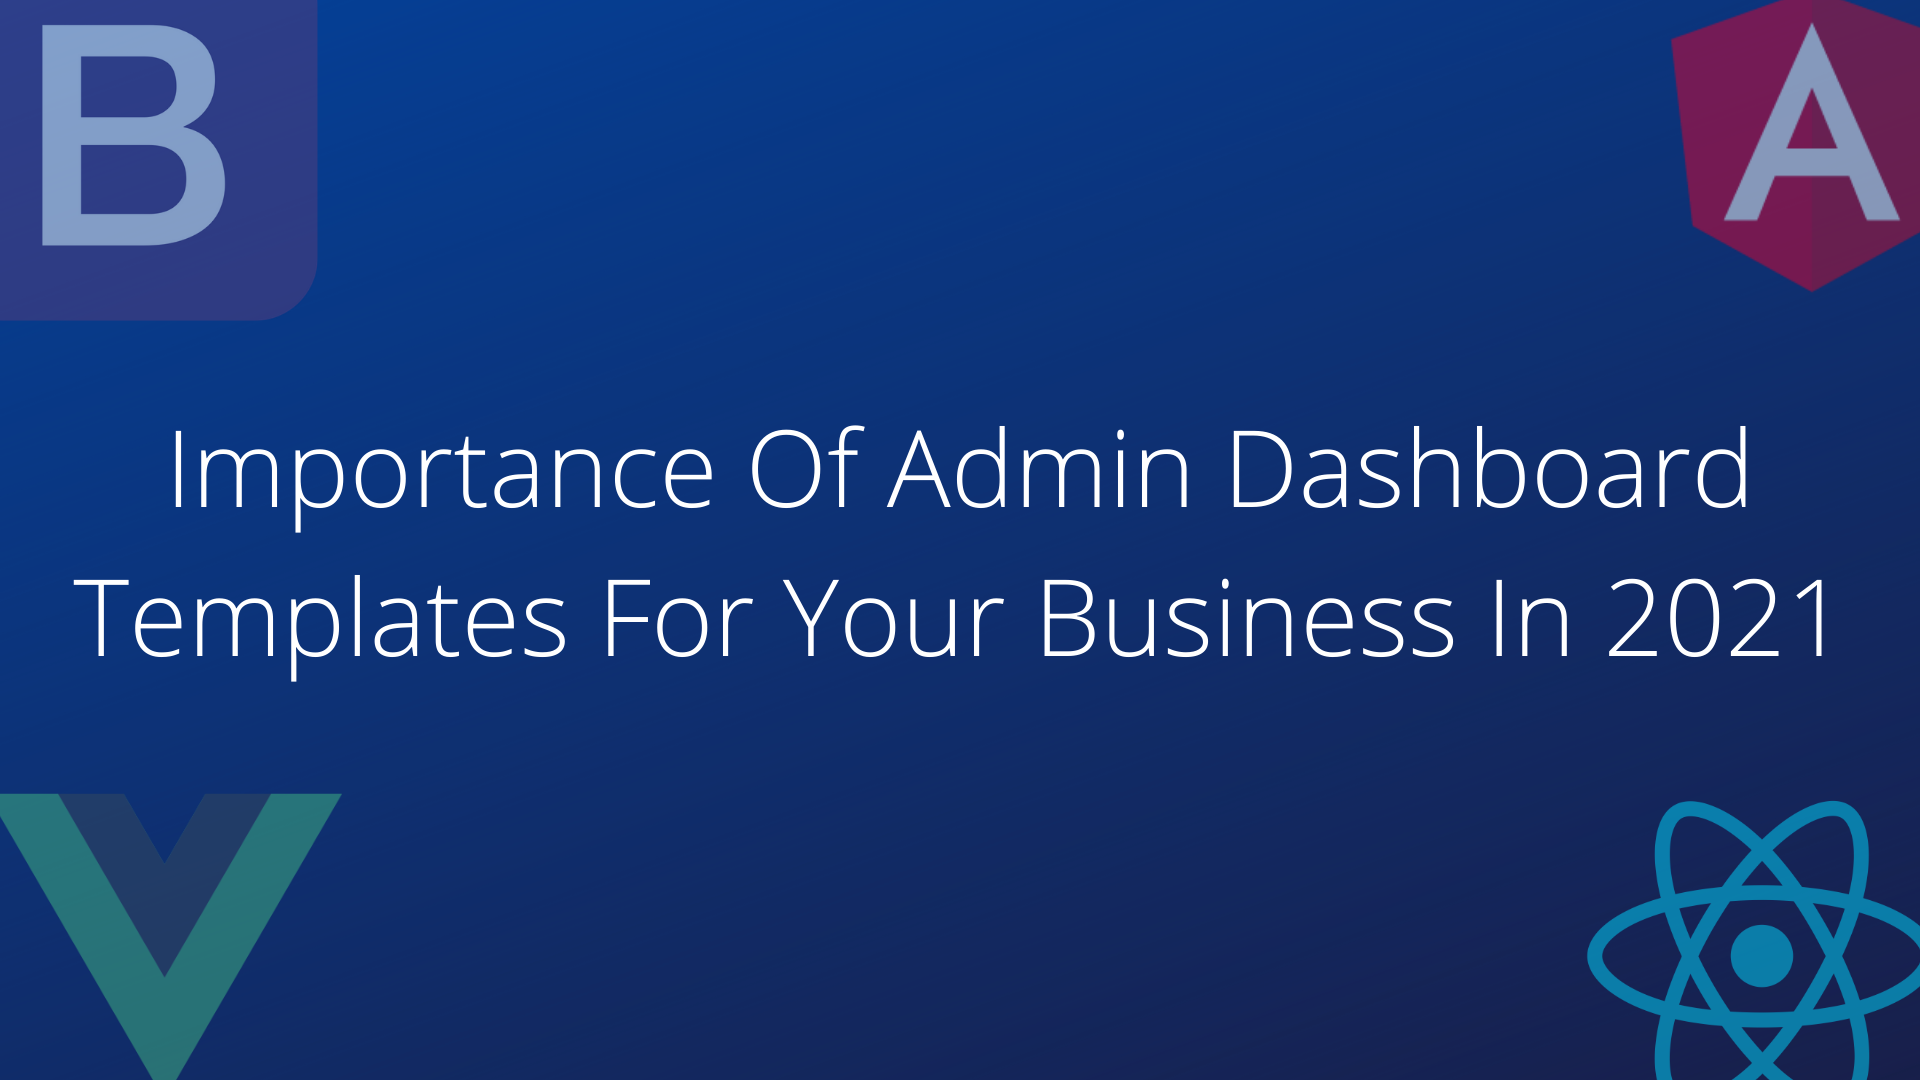 Importance Of Admin Dashboard Templates For Your Business In 2021